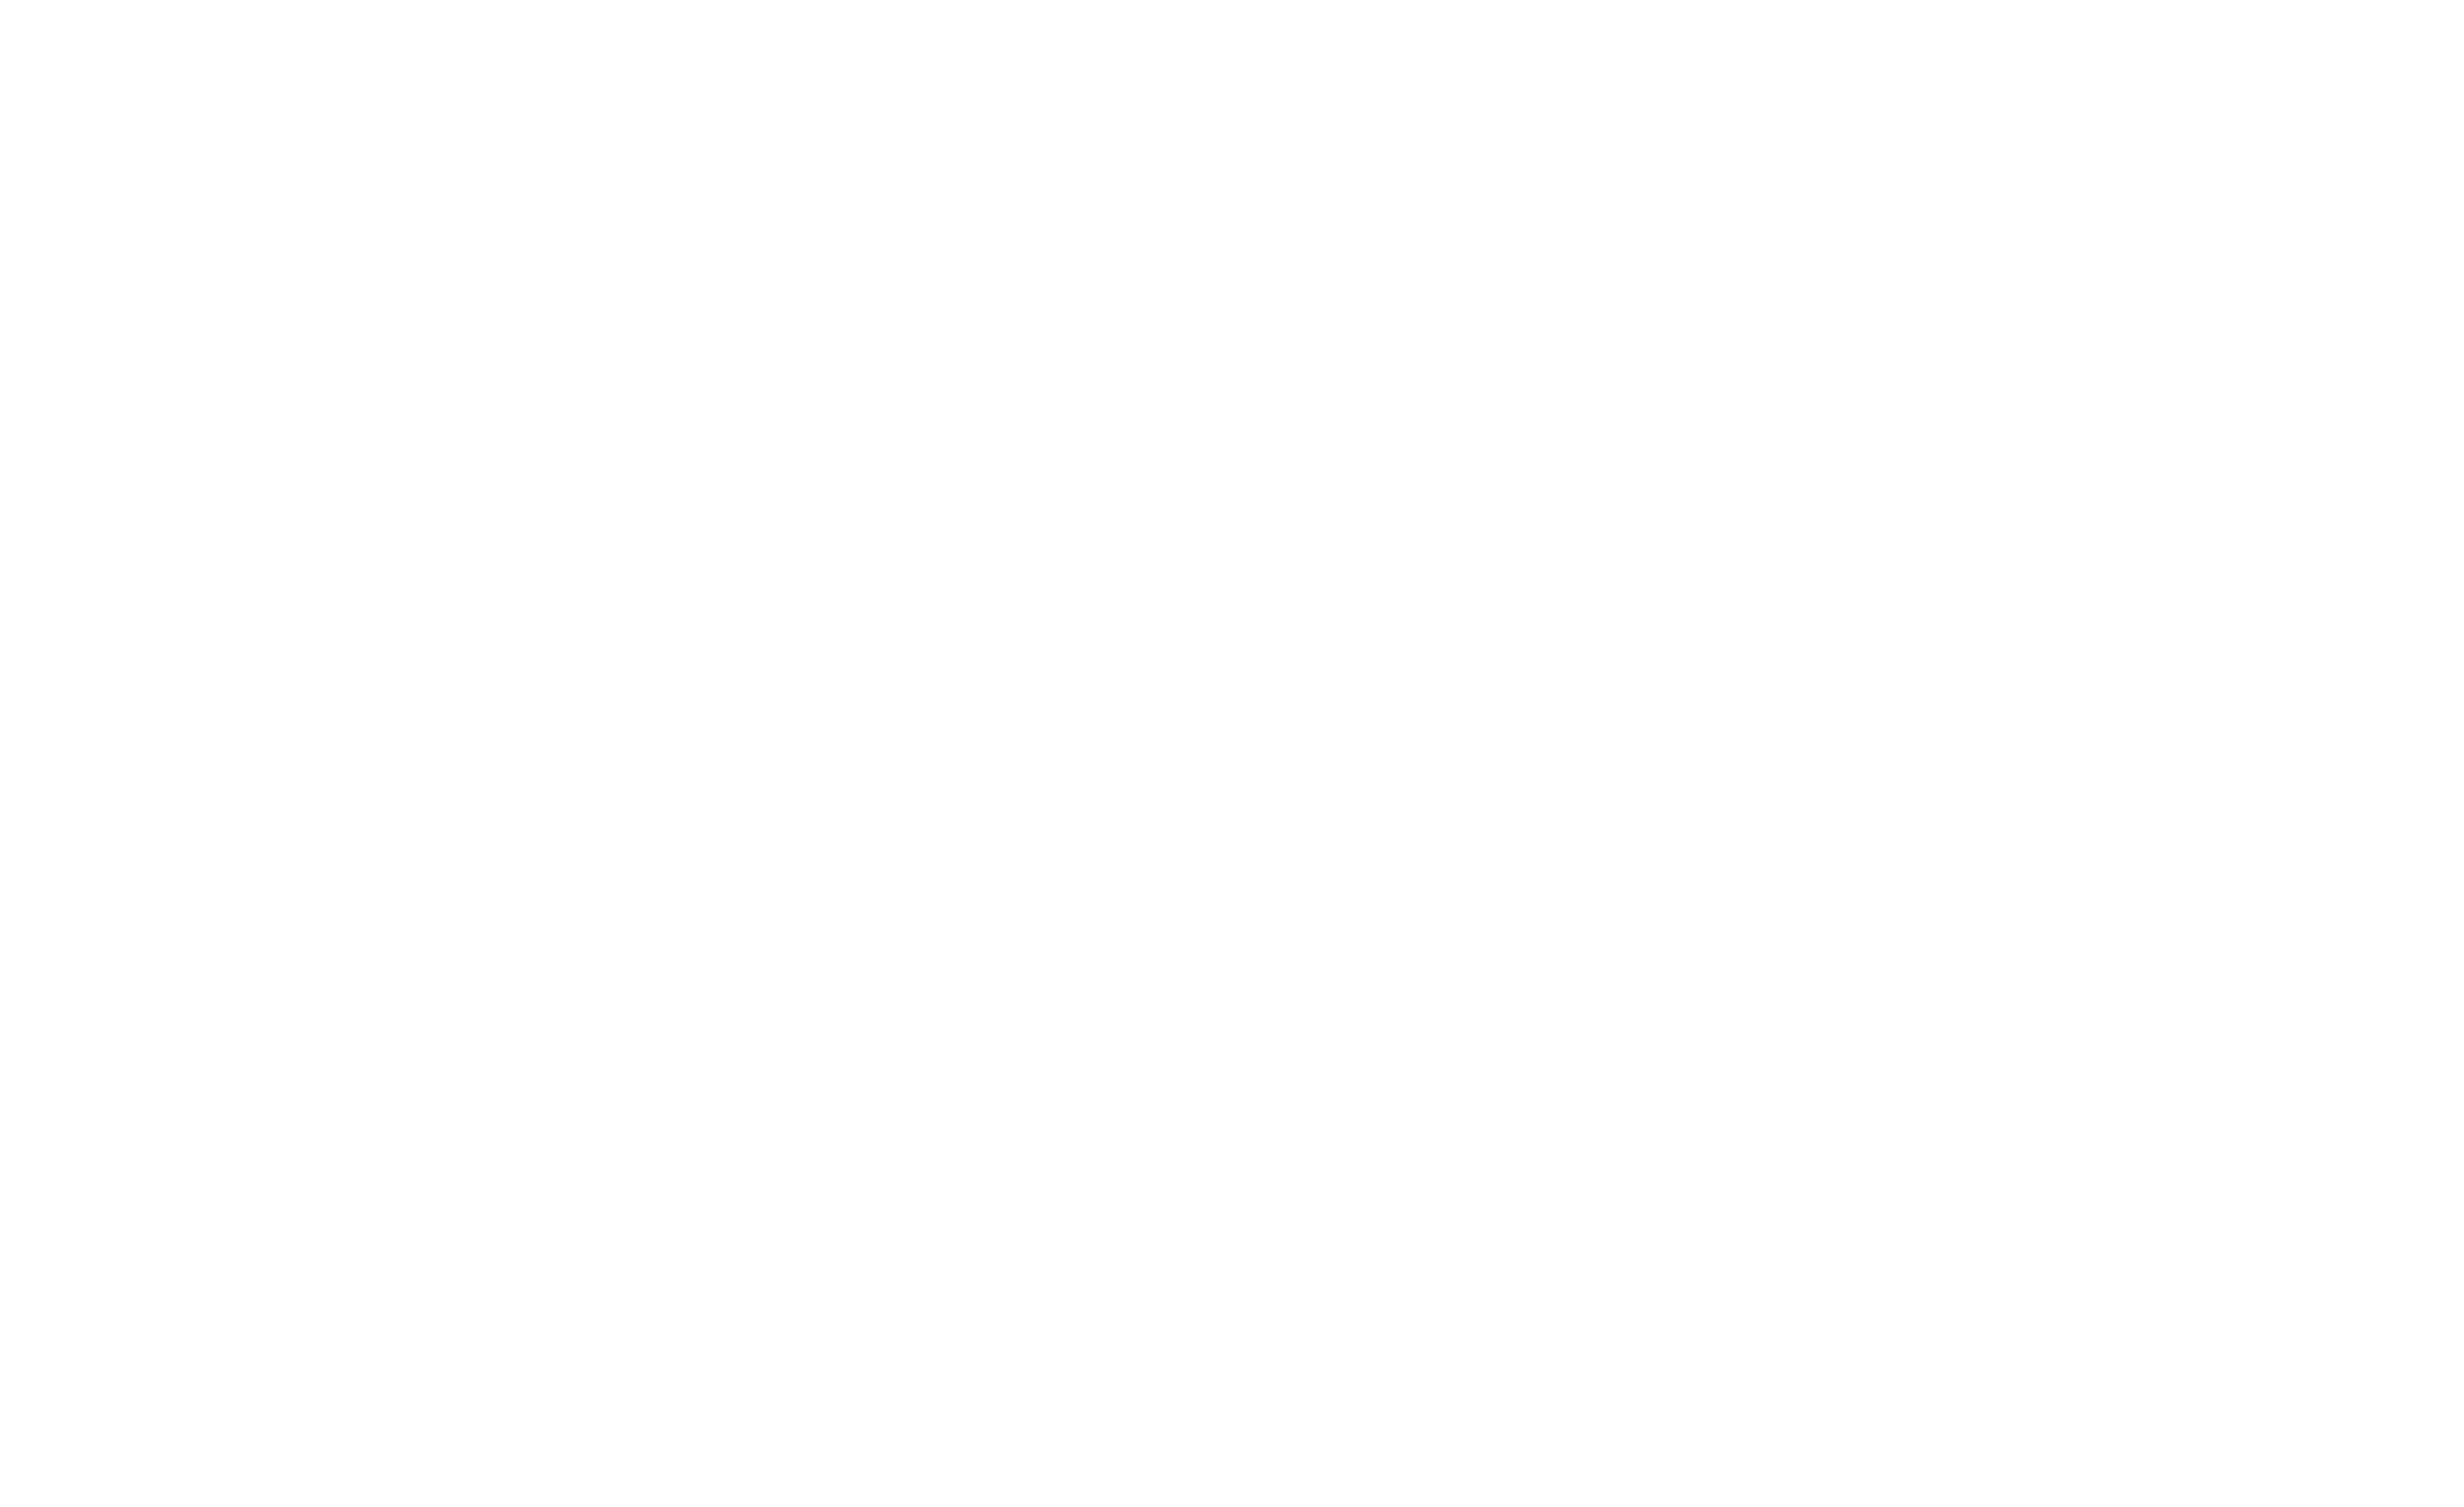 Magic sparkles png. Files magical by krazy